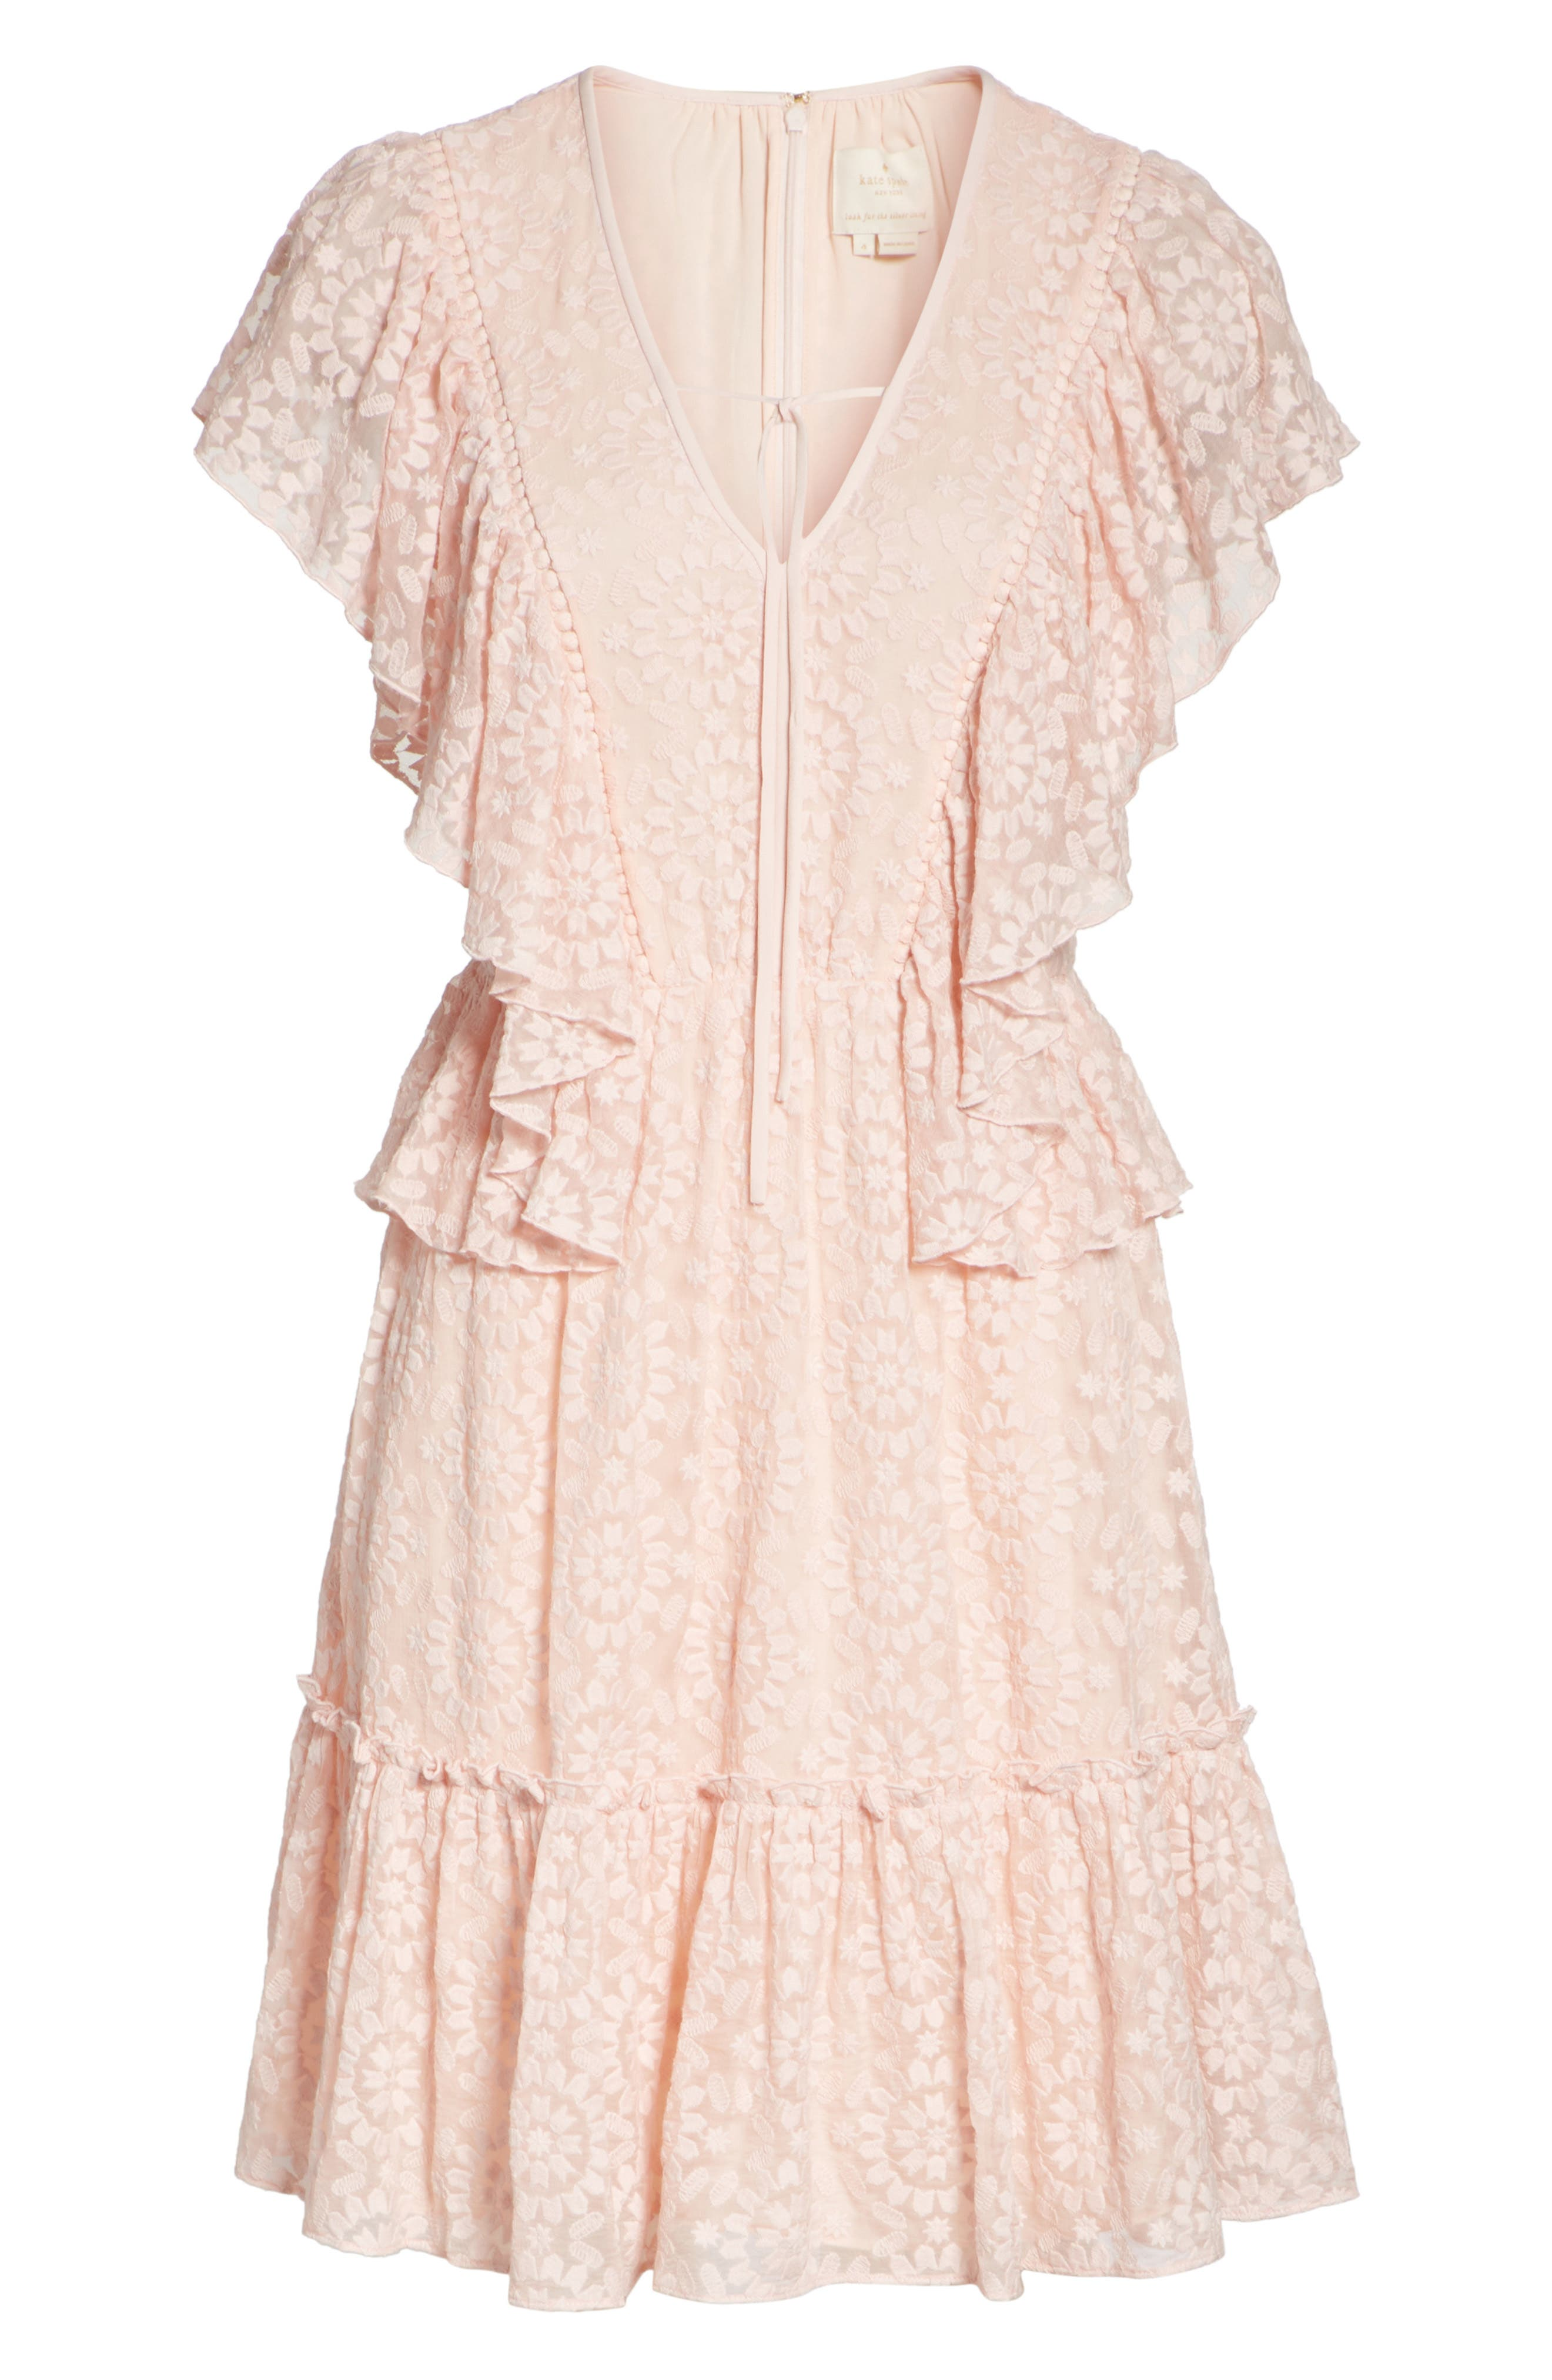 embroidered cotton & silk chiffon dress,                             Alternate thumbnail 6, color,                             Pearl  Pink